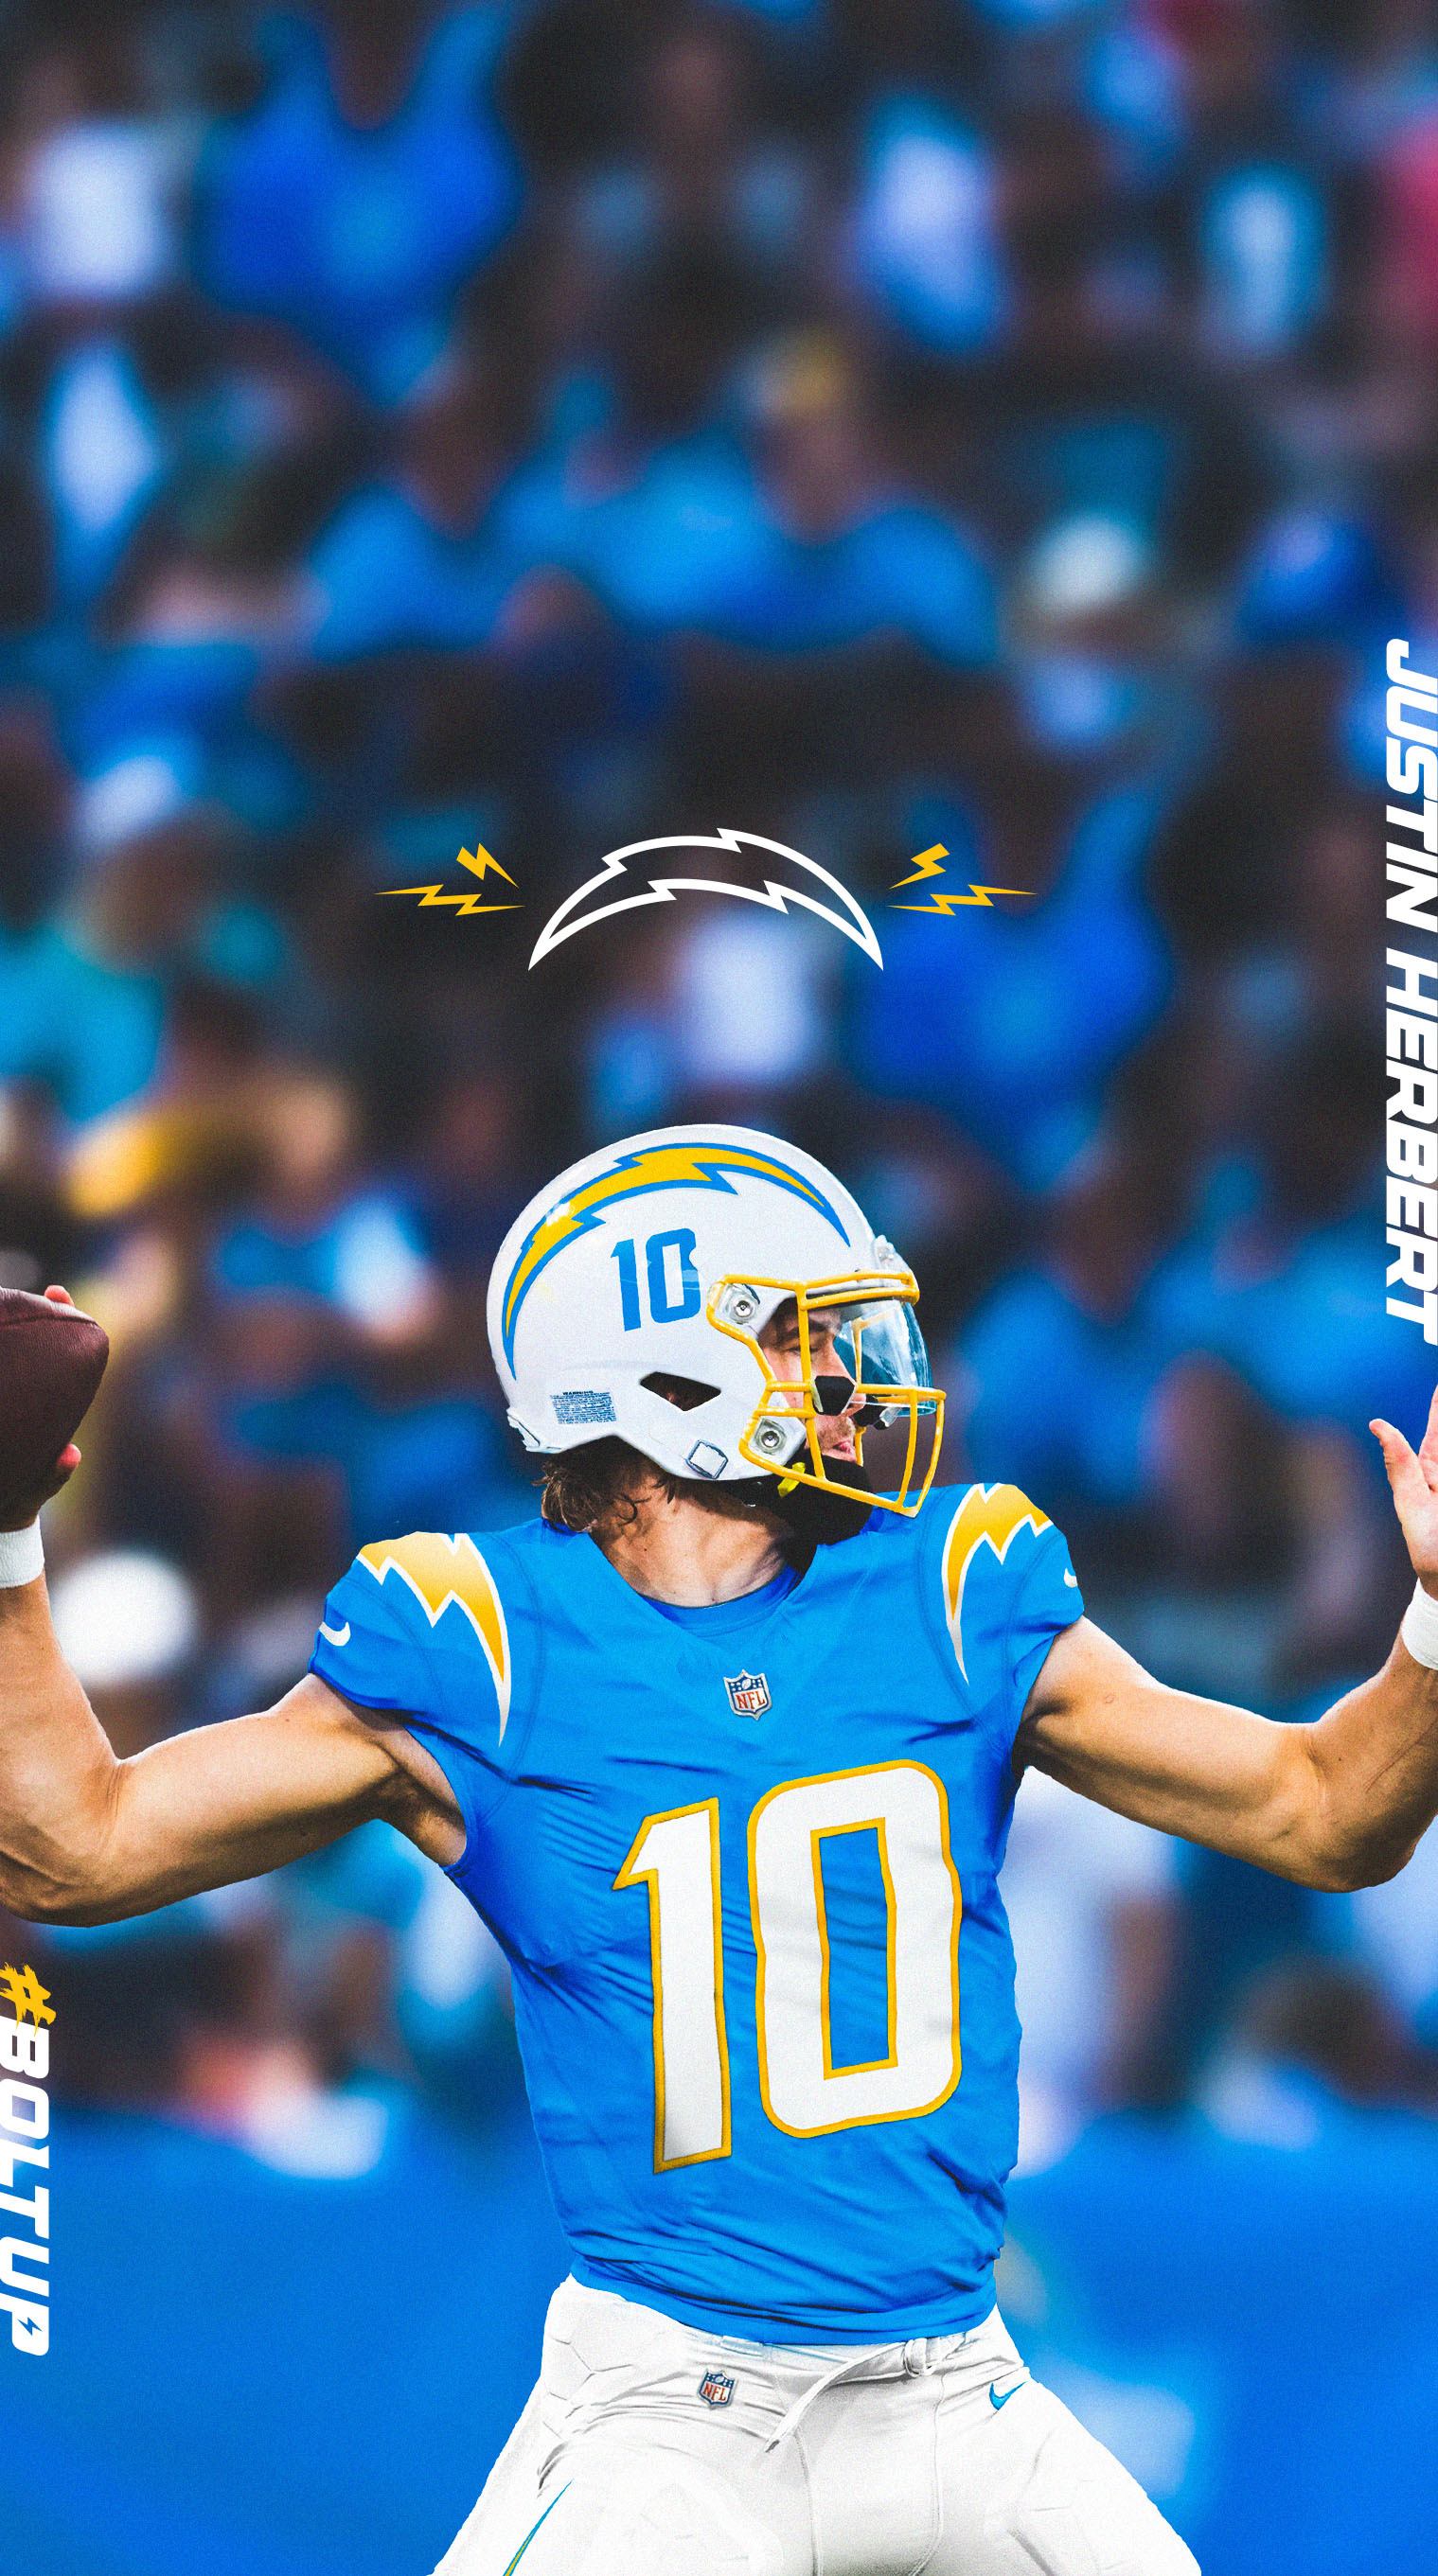 Chargers Wallpapers | Los Angeles Chargers - chargers.com